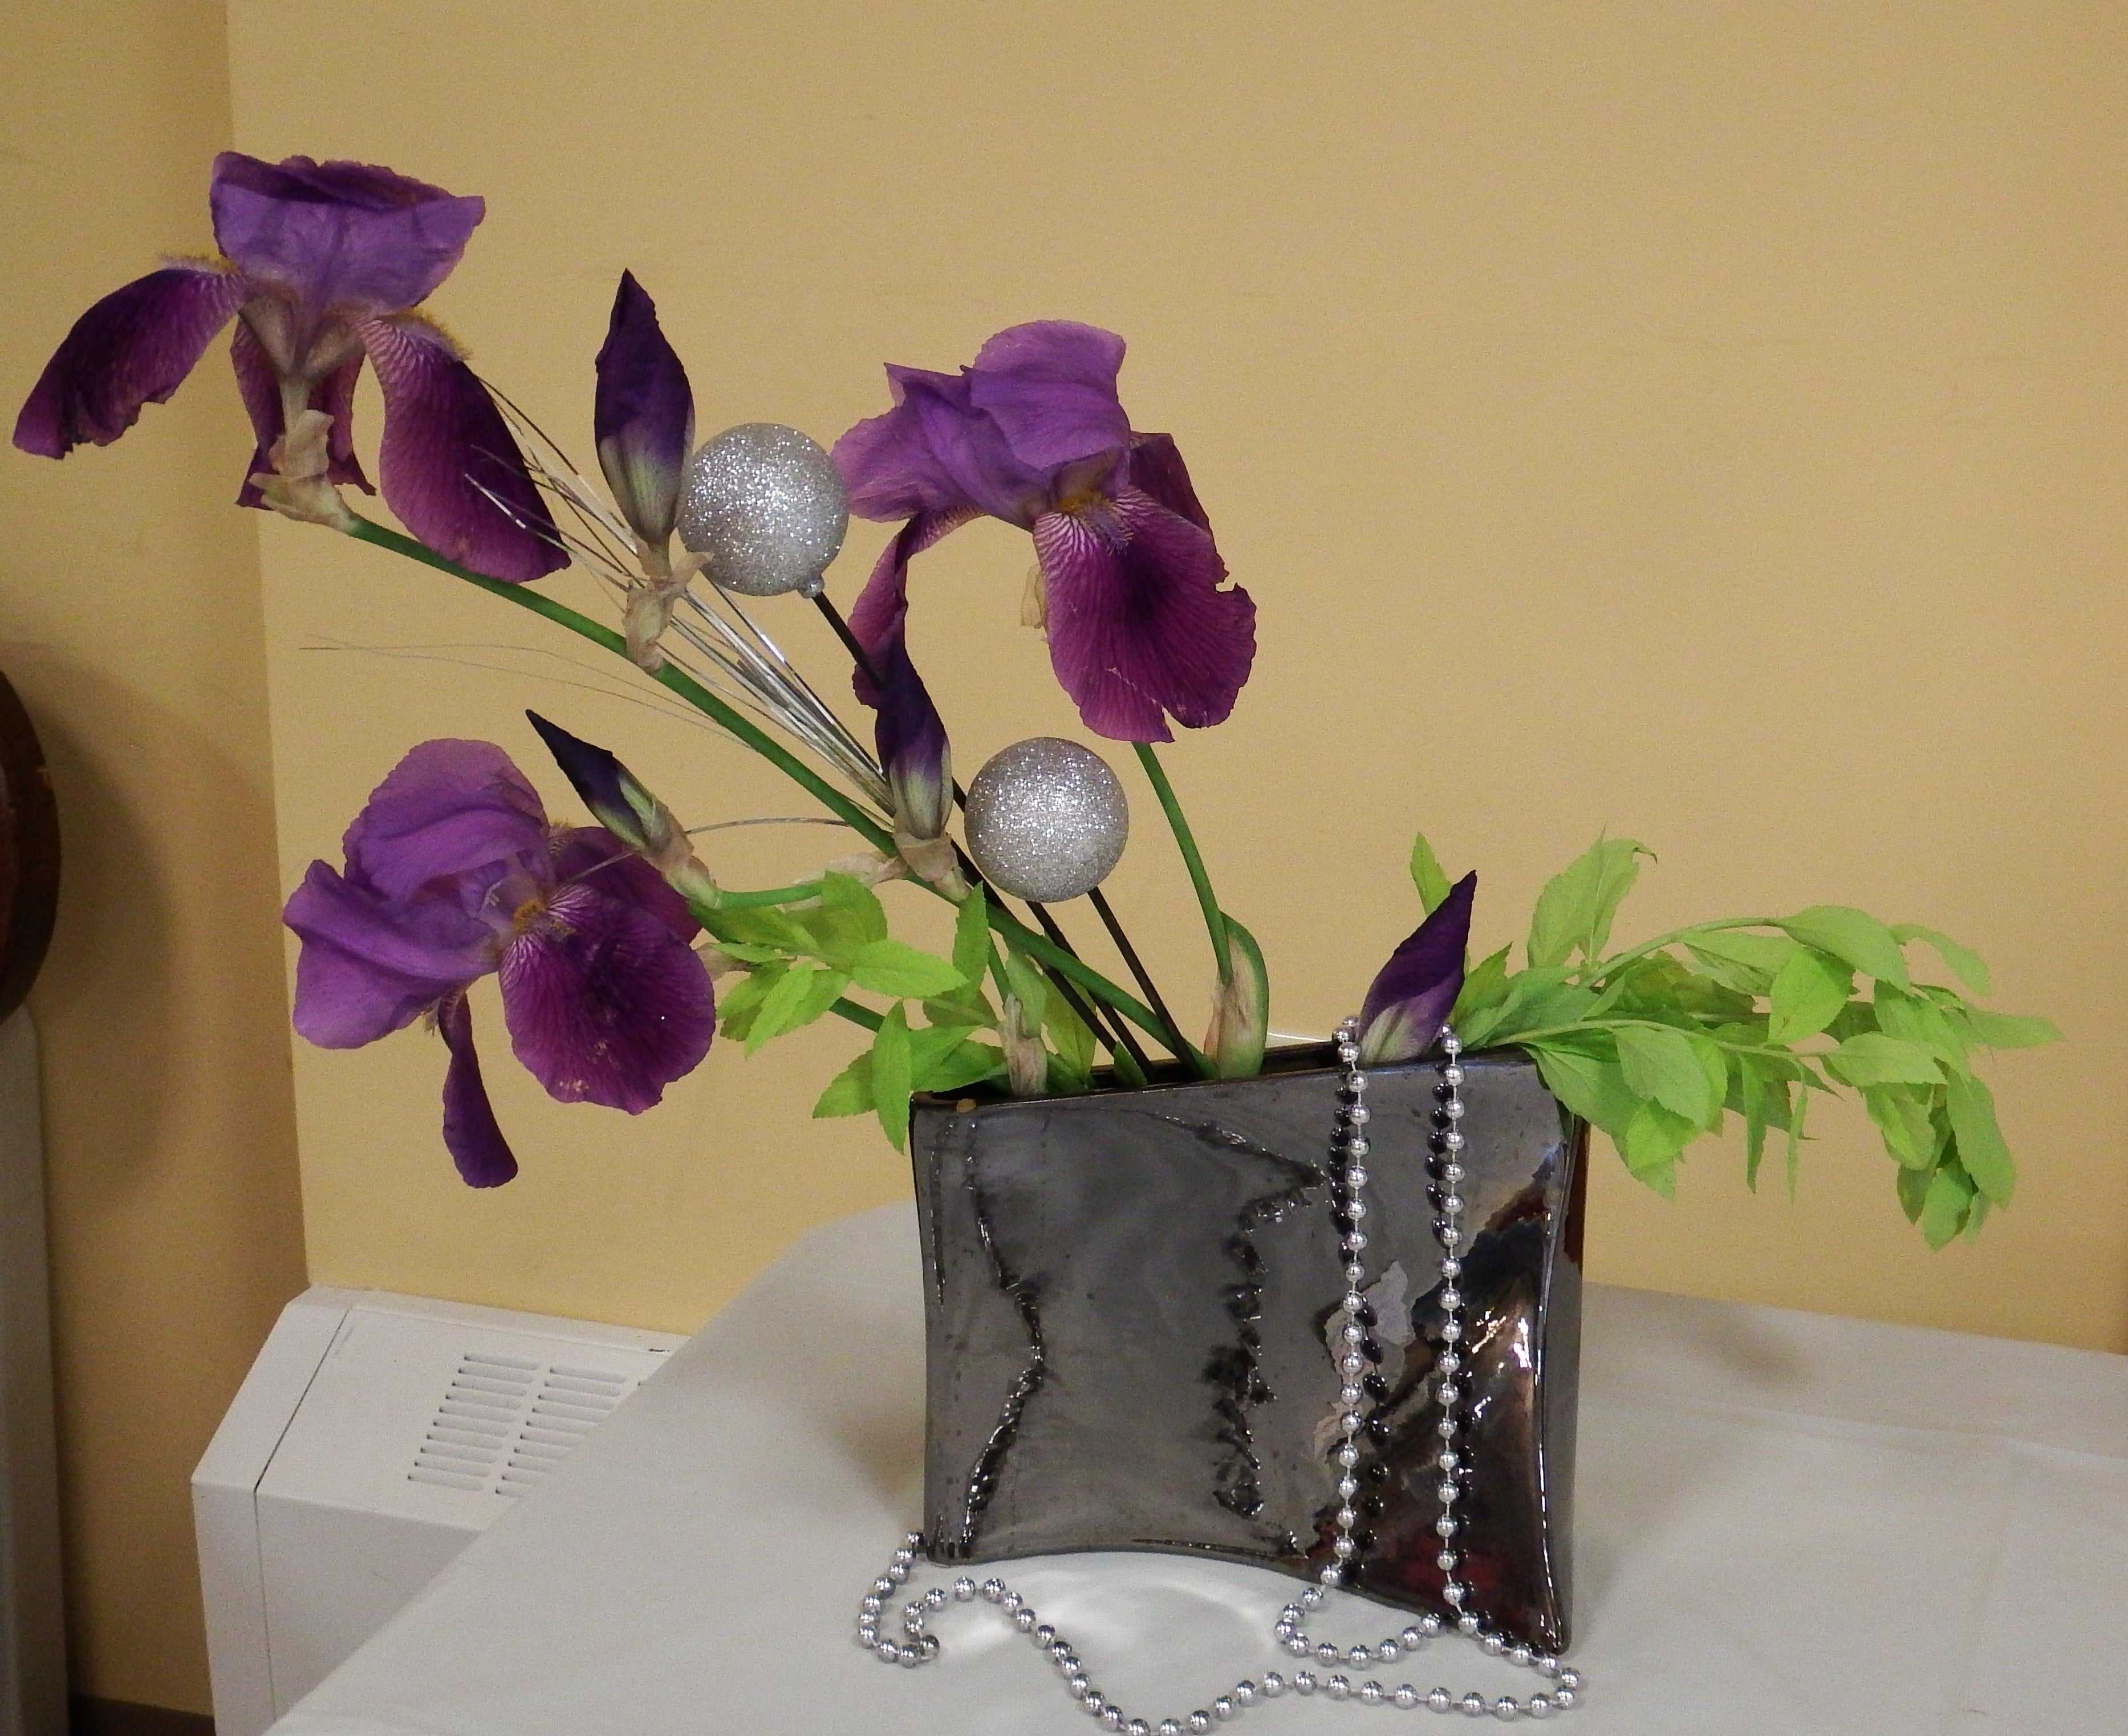 Floral Arts - Come learn about designs